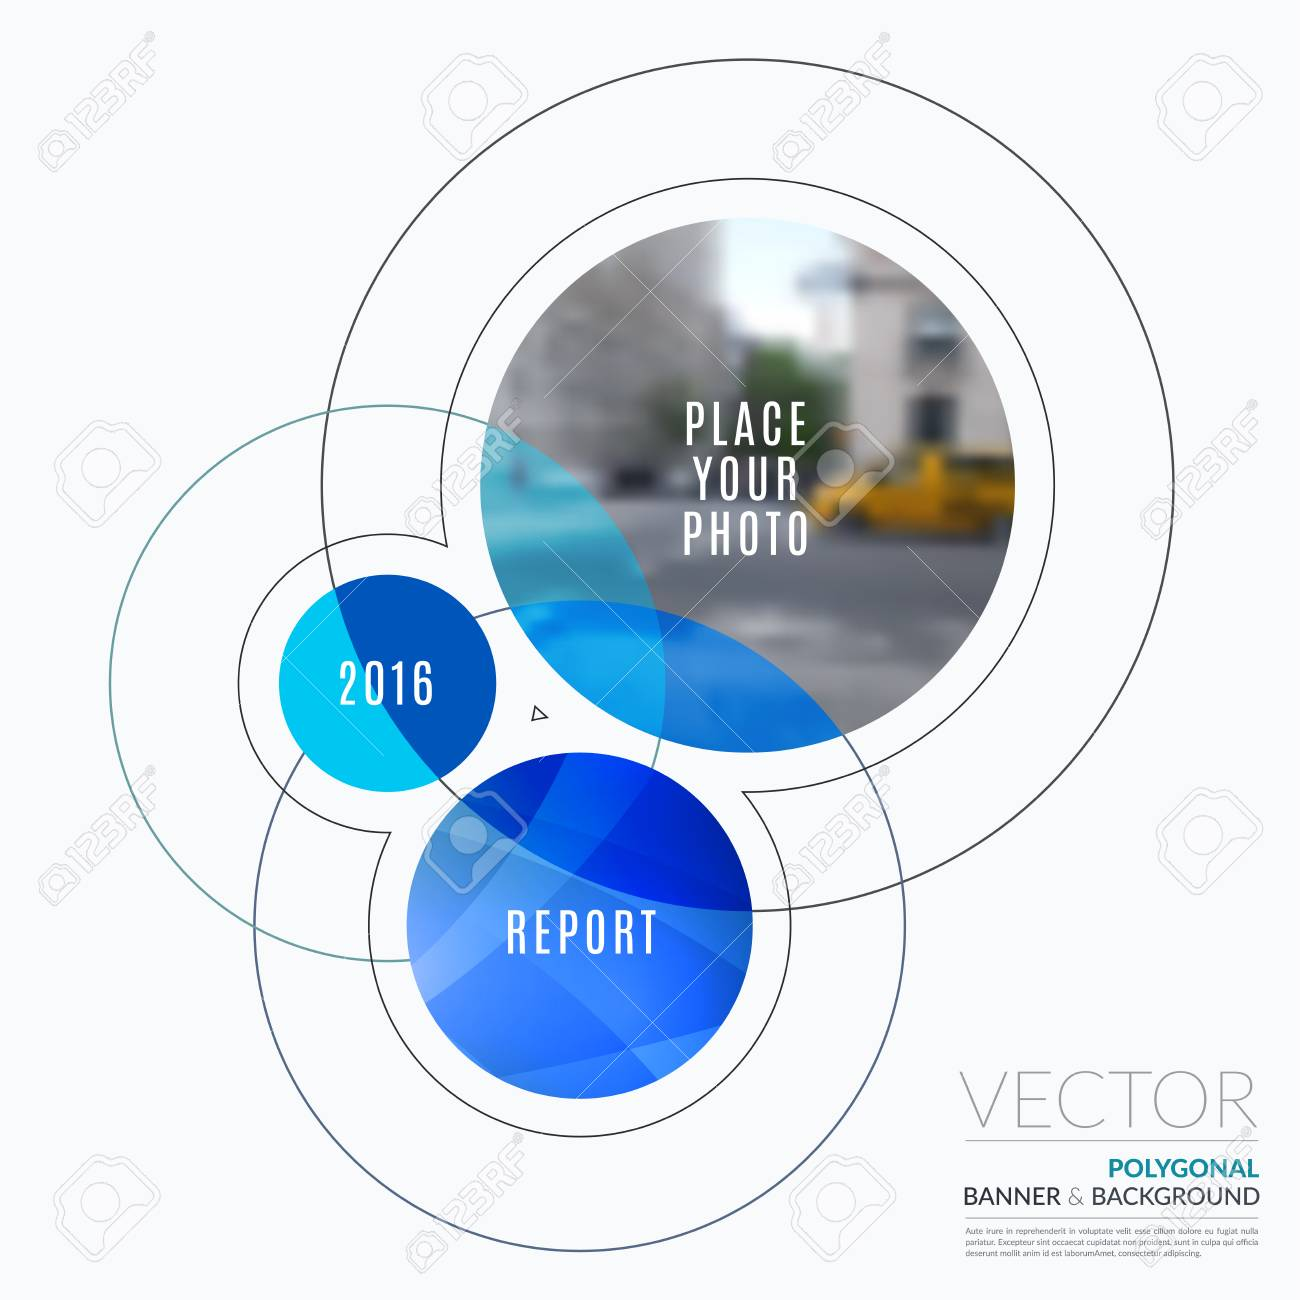 Business design elements for graphic layout modern abstract business design elements for graphic layout modern abstract background template with rounds circles wajeb Image collections